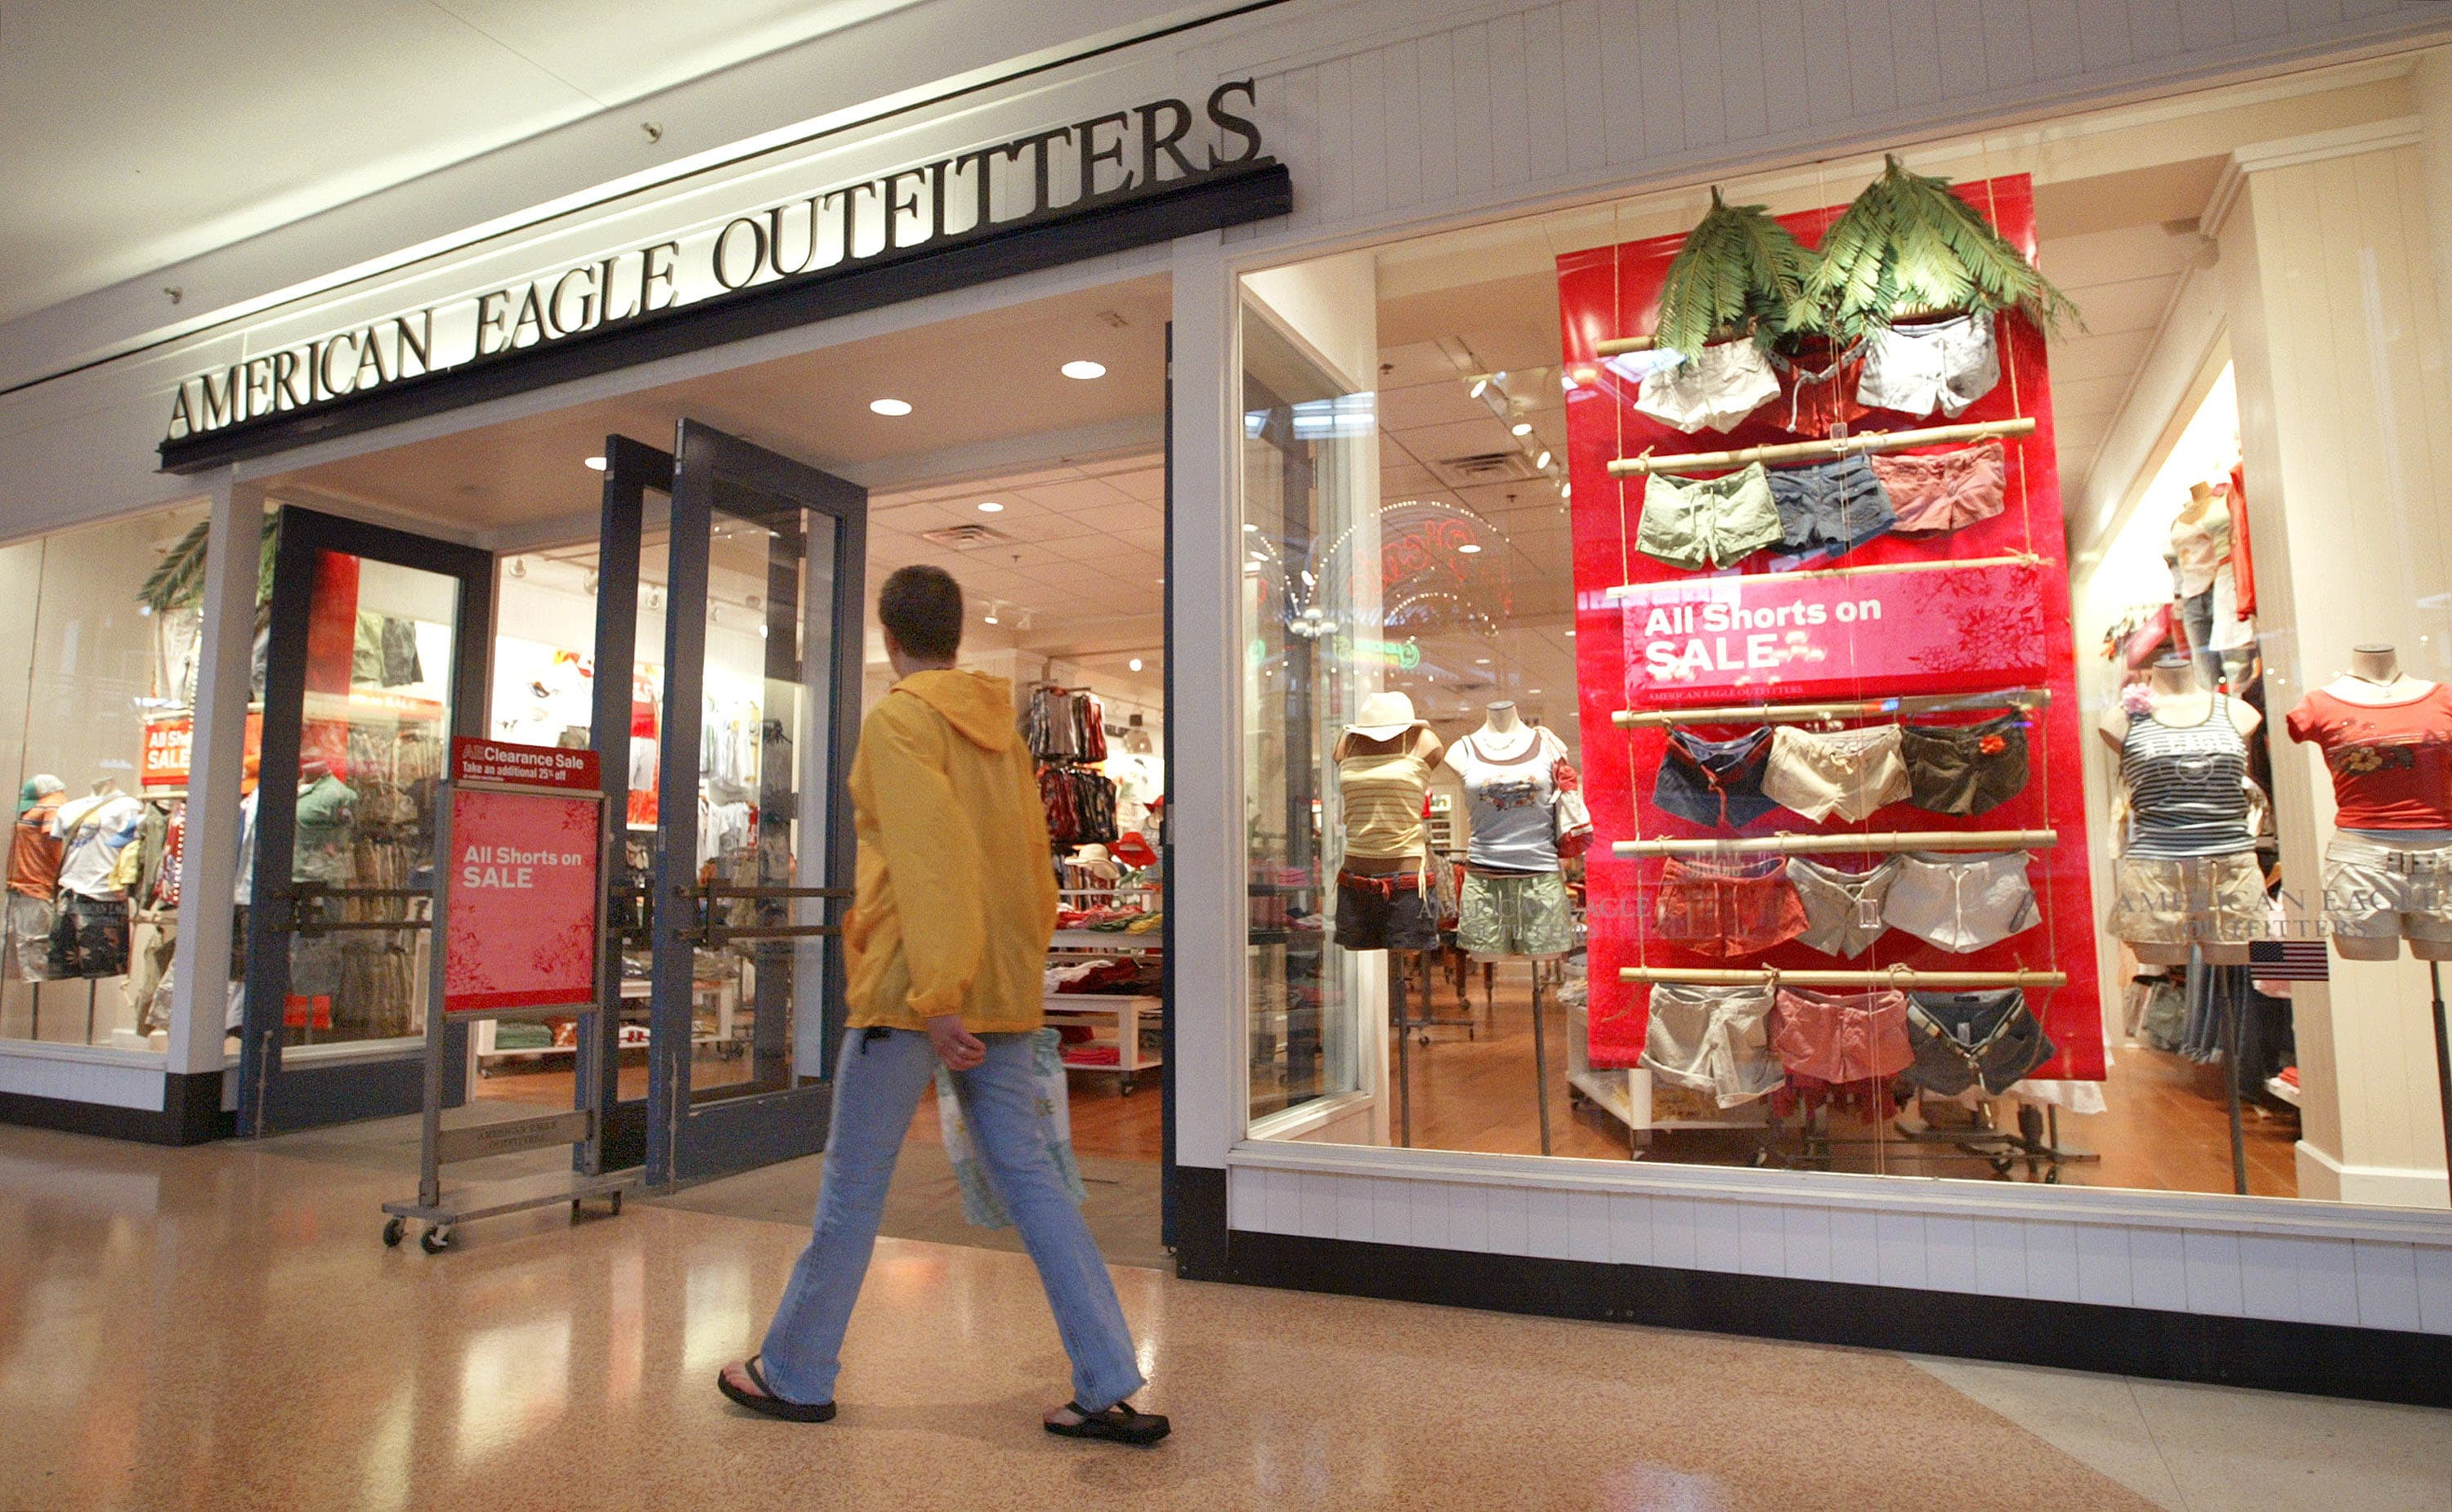 American Eagle stock plummets after delayed back-to-school season led to disappointing same-store sales growth